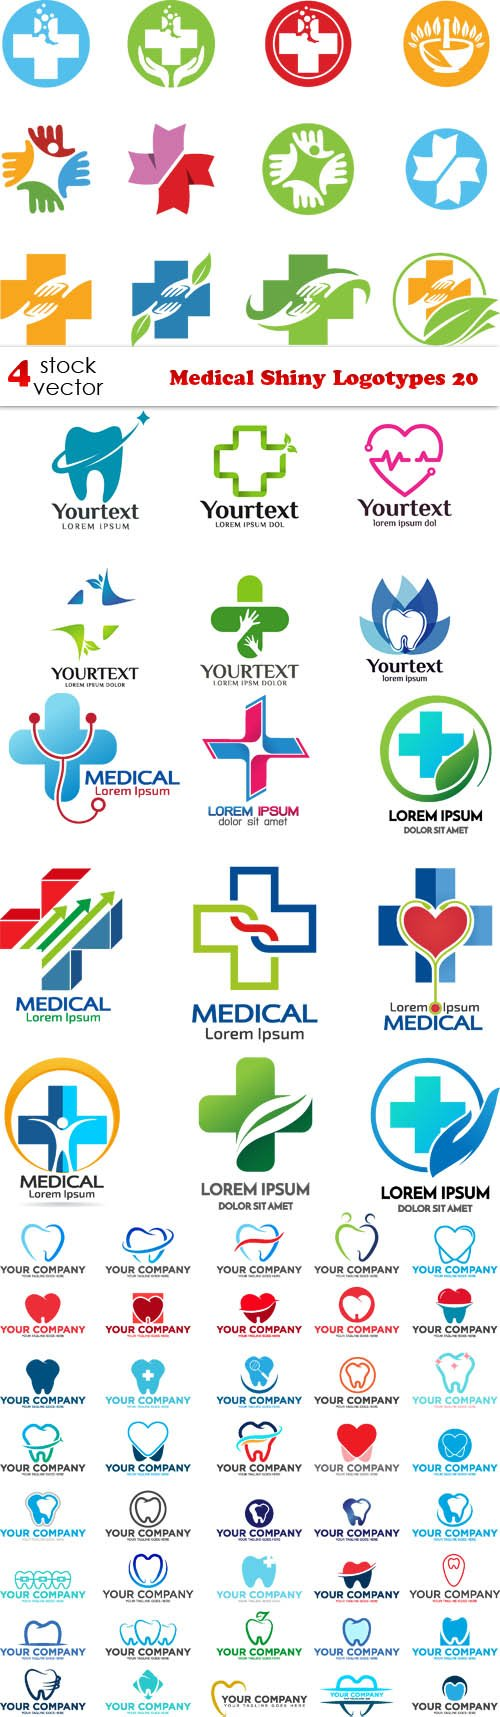 Vectors - Medical Shiny Logotypes 20